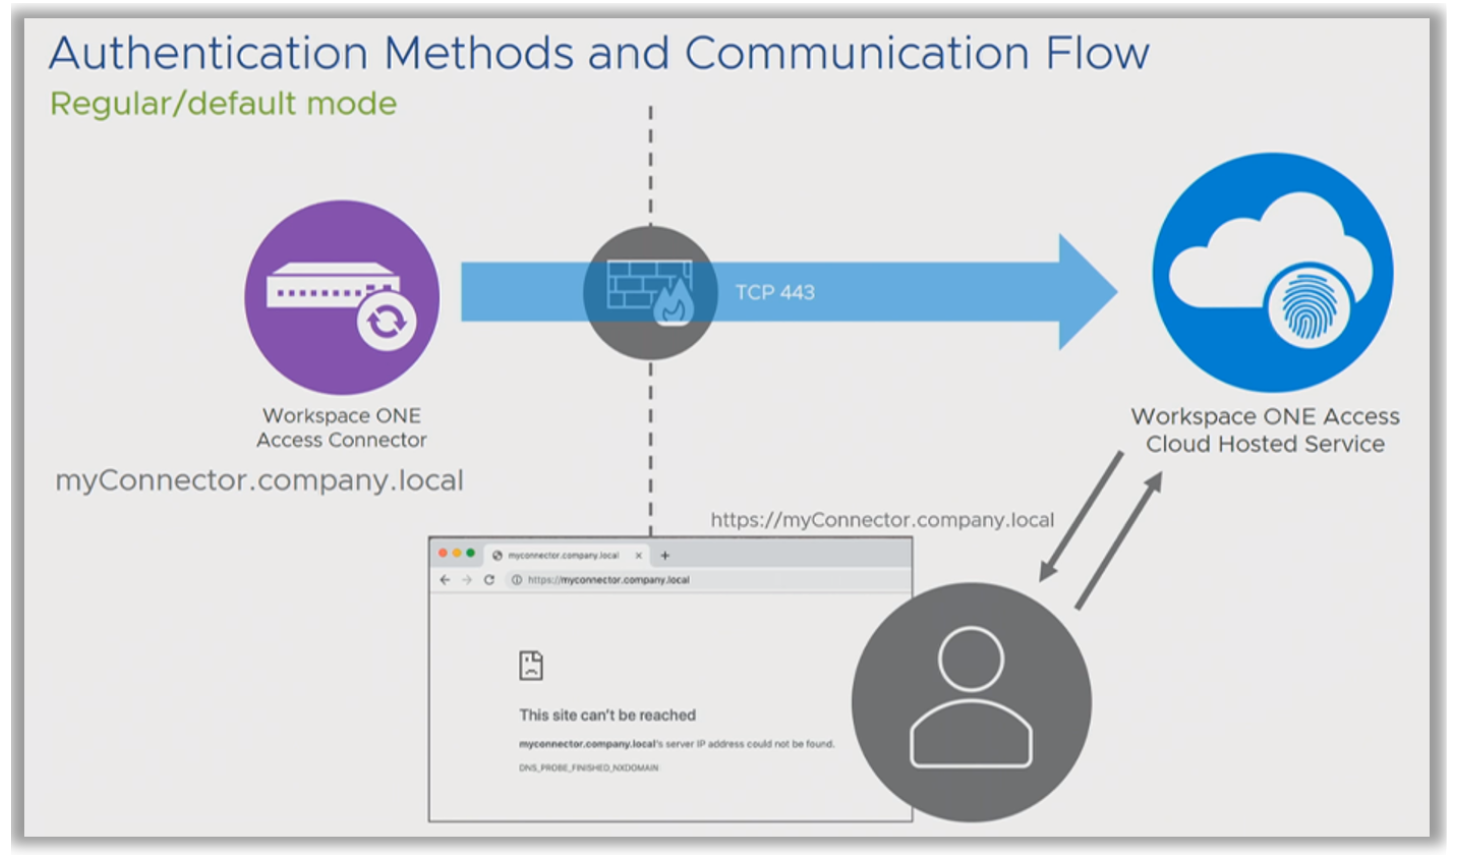 Authentication methods and communication flow for Workspace ONE Access or VMware Identity Manager.